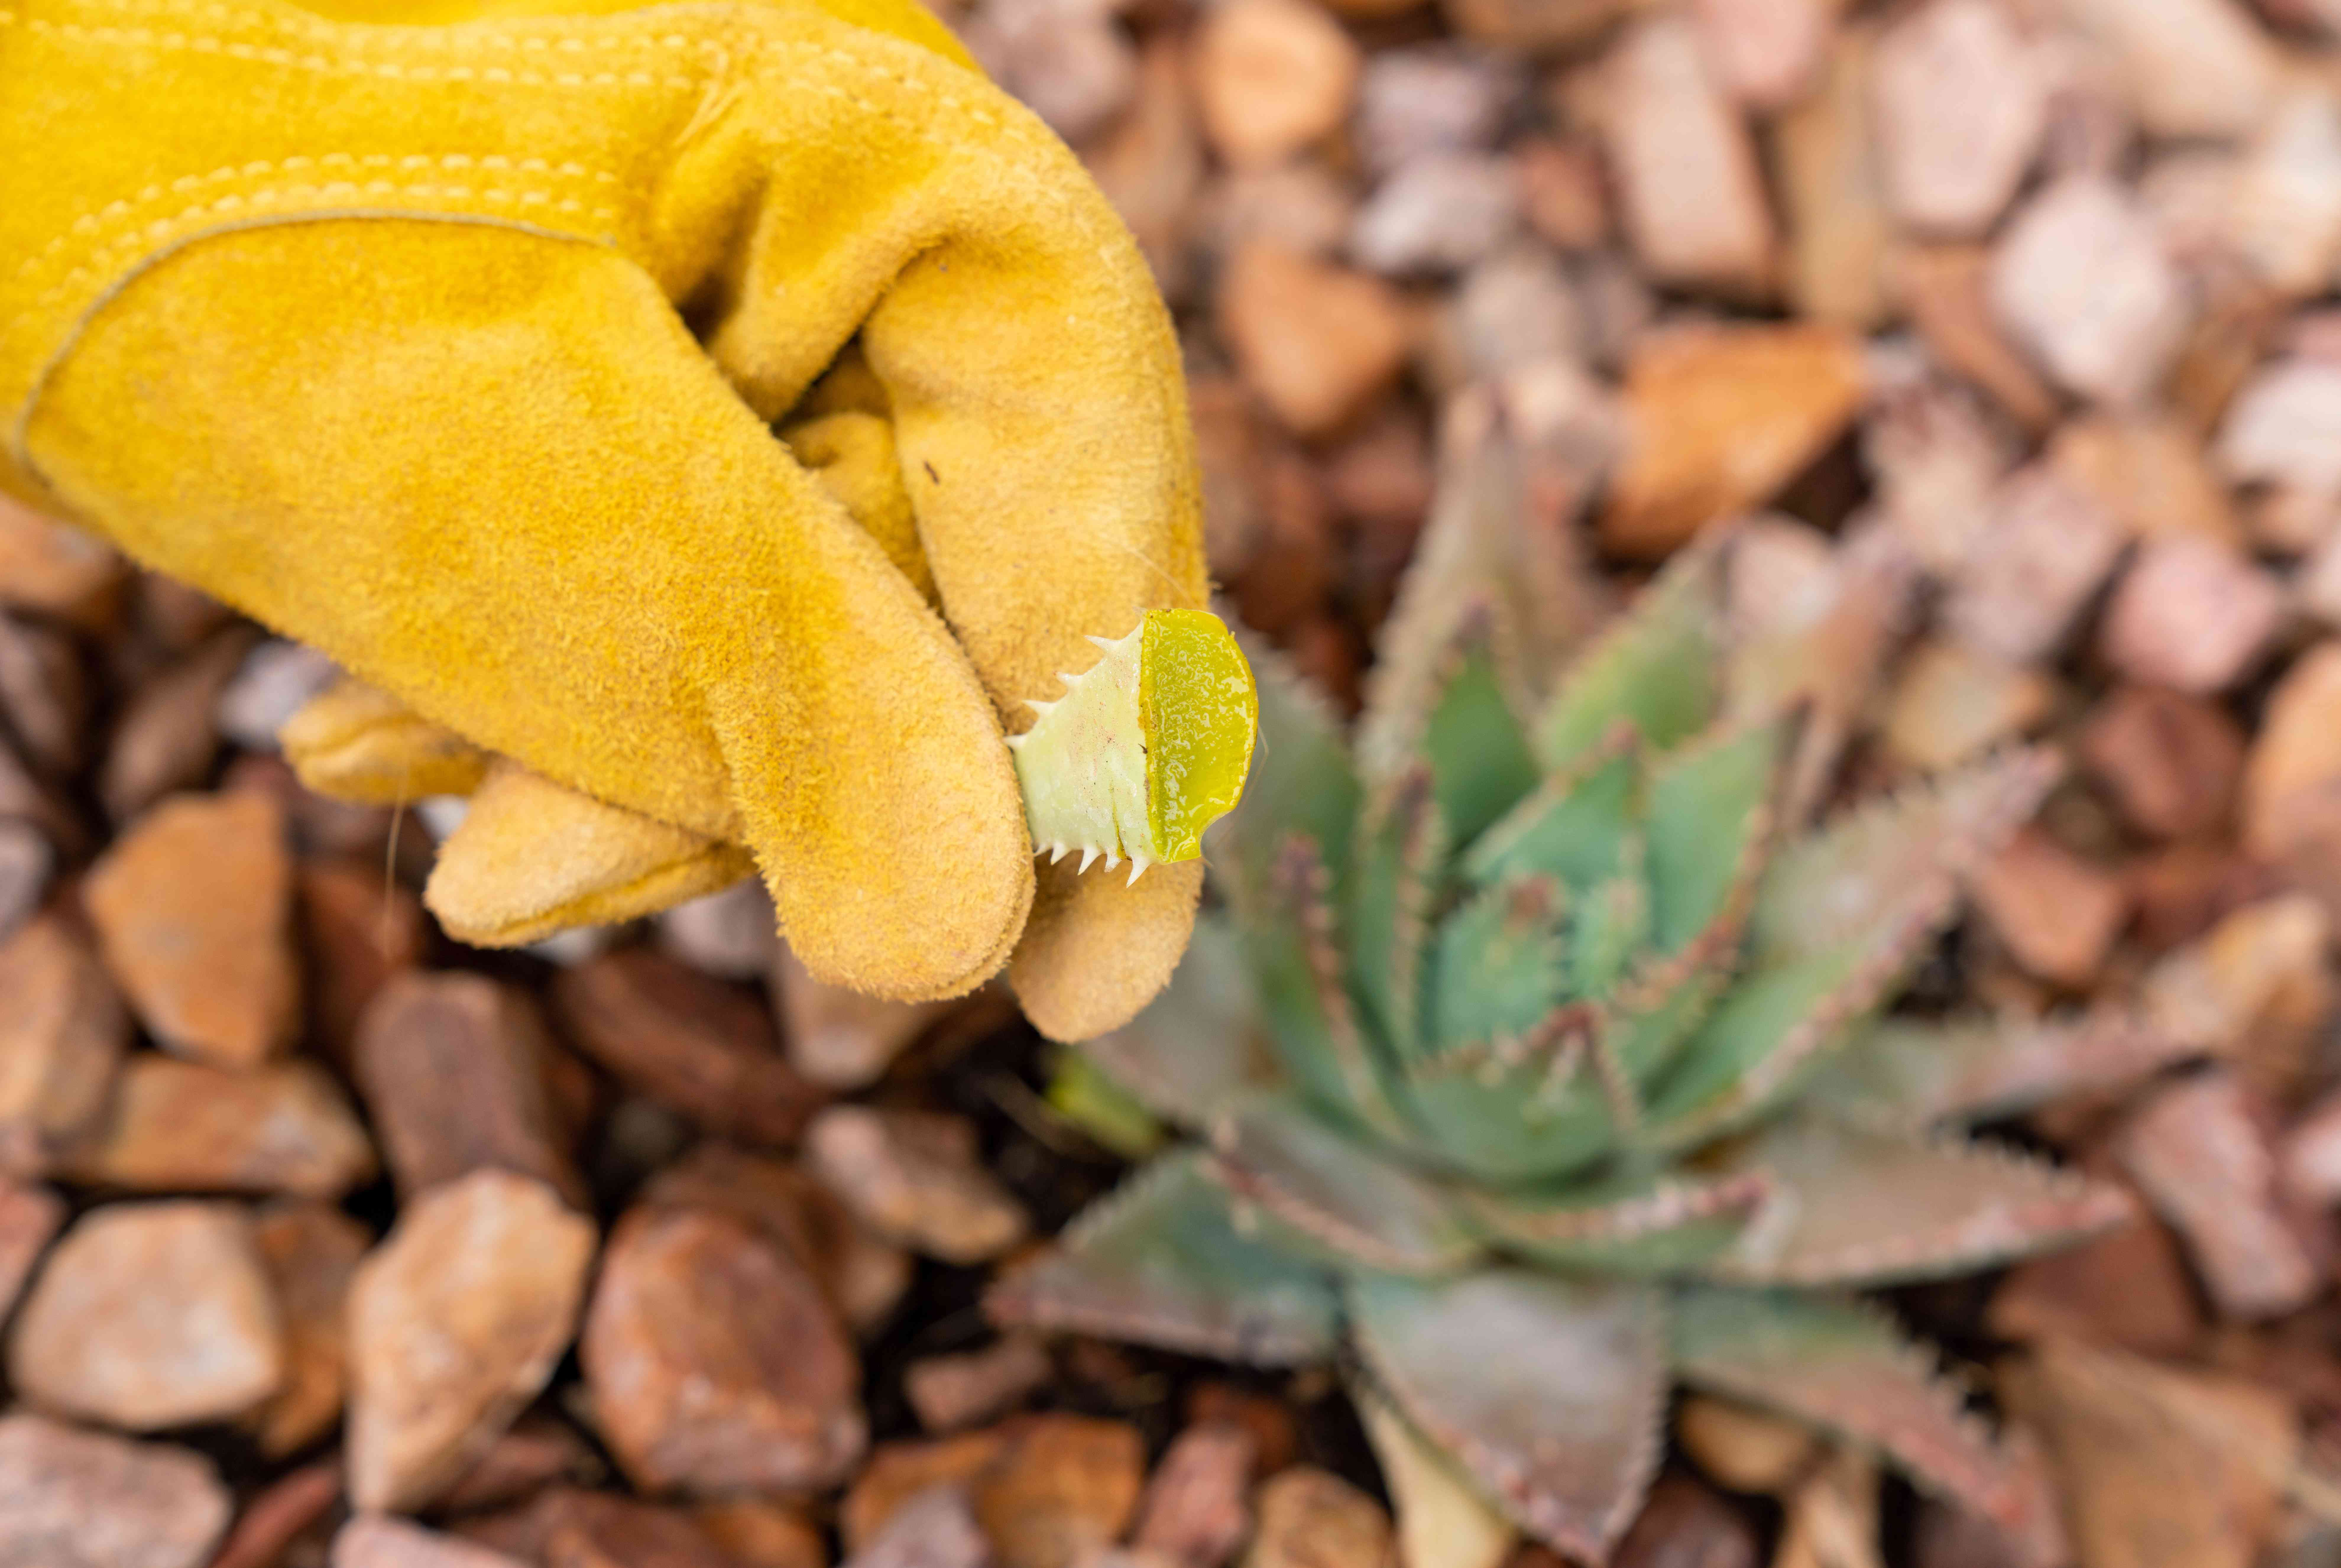 Aloe vera leaf cut and held up with yellow gloves above aloe vera plant